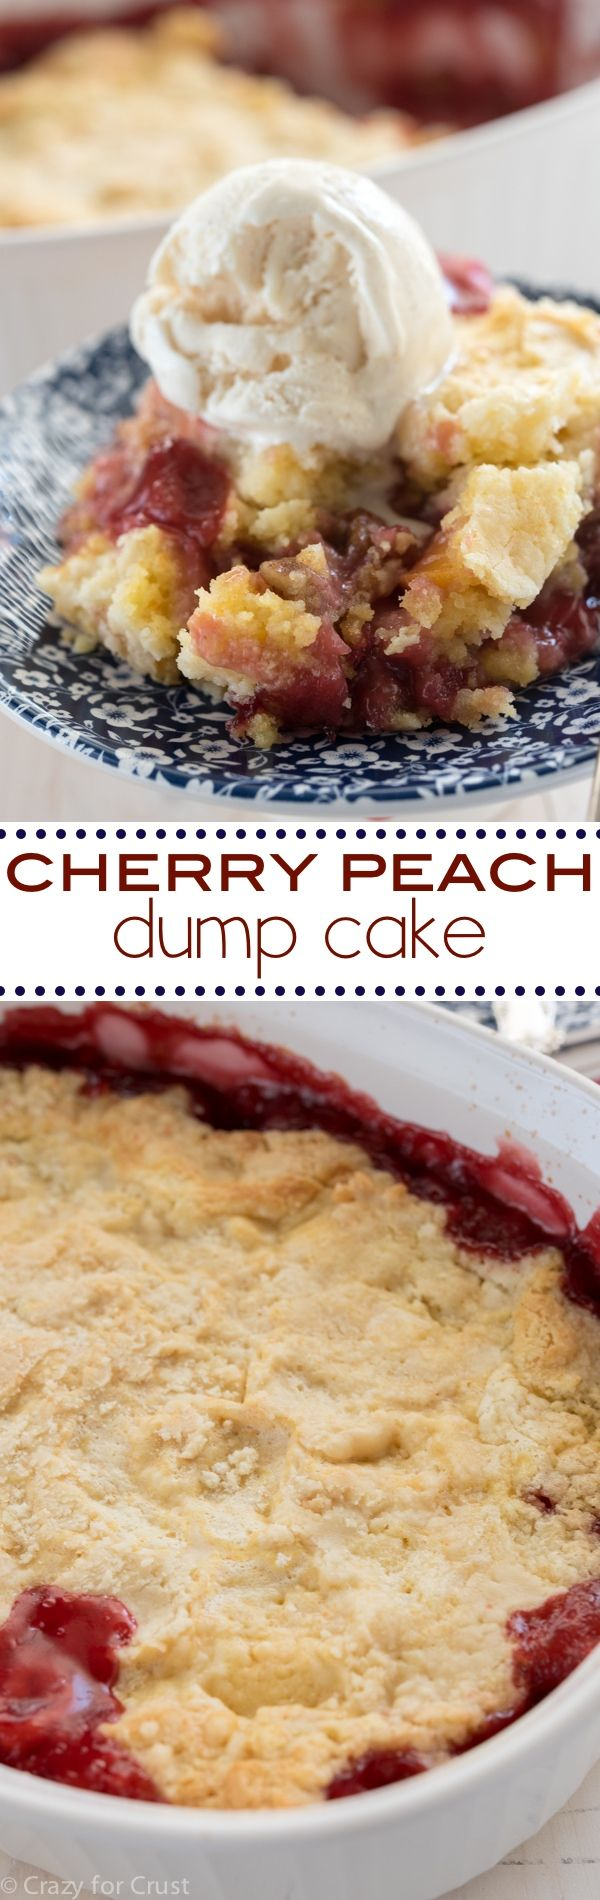 This Cherry Peach Dump Cake is the perfect easy and fast potluck recipe! It's simple and cheap to make with only 5 ingredients!